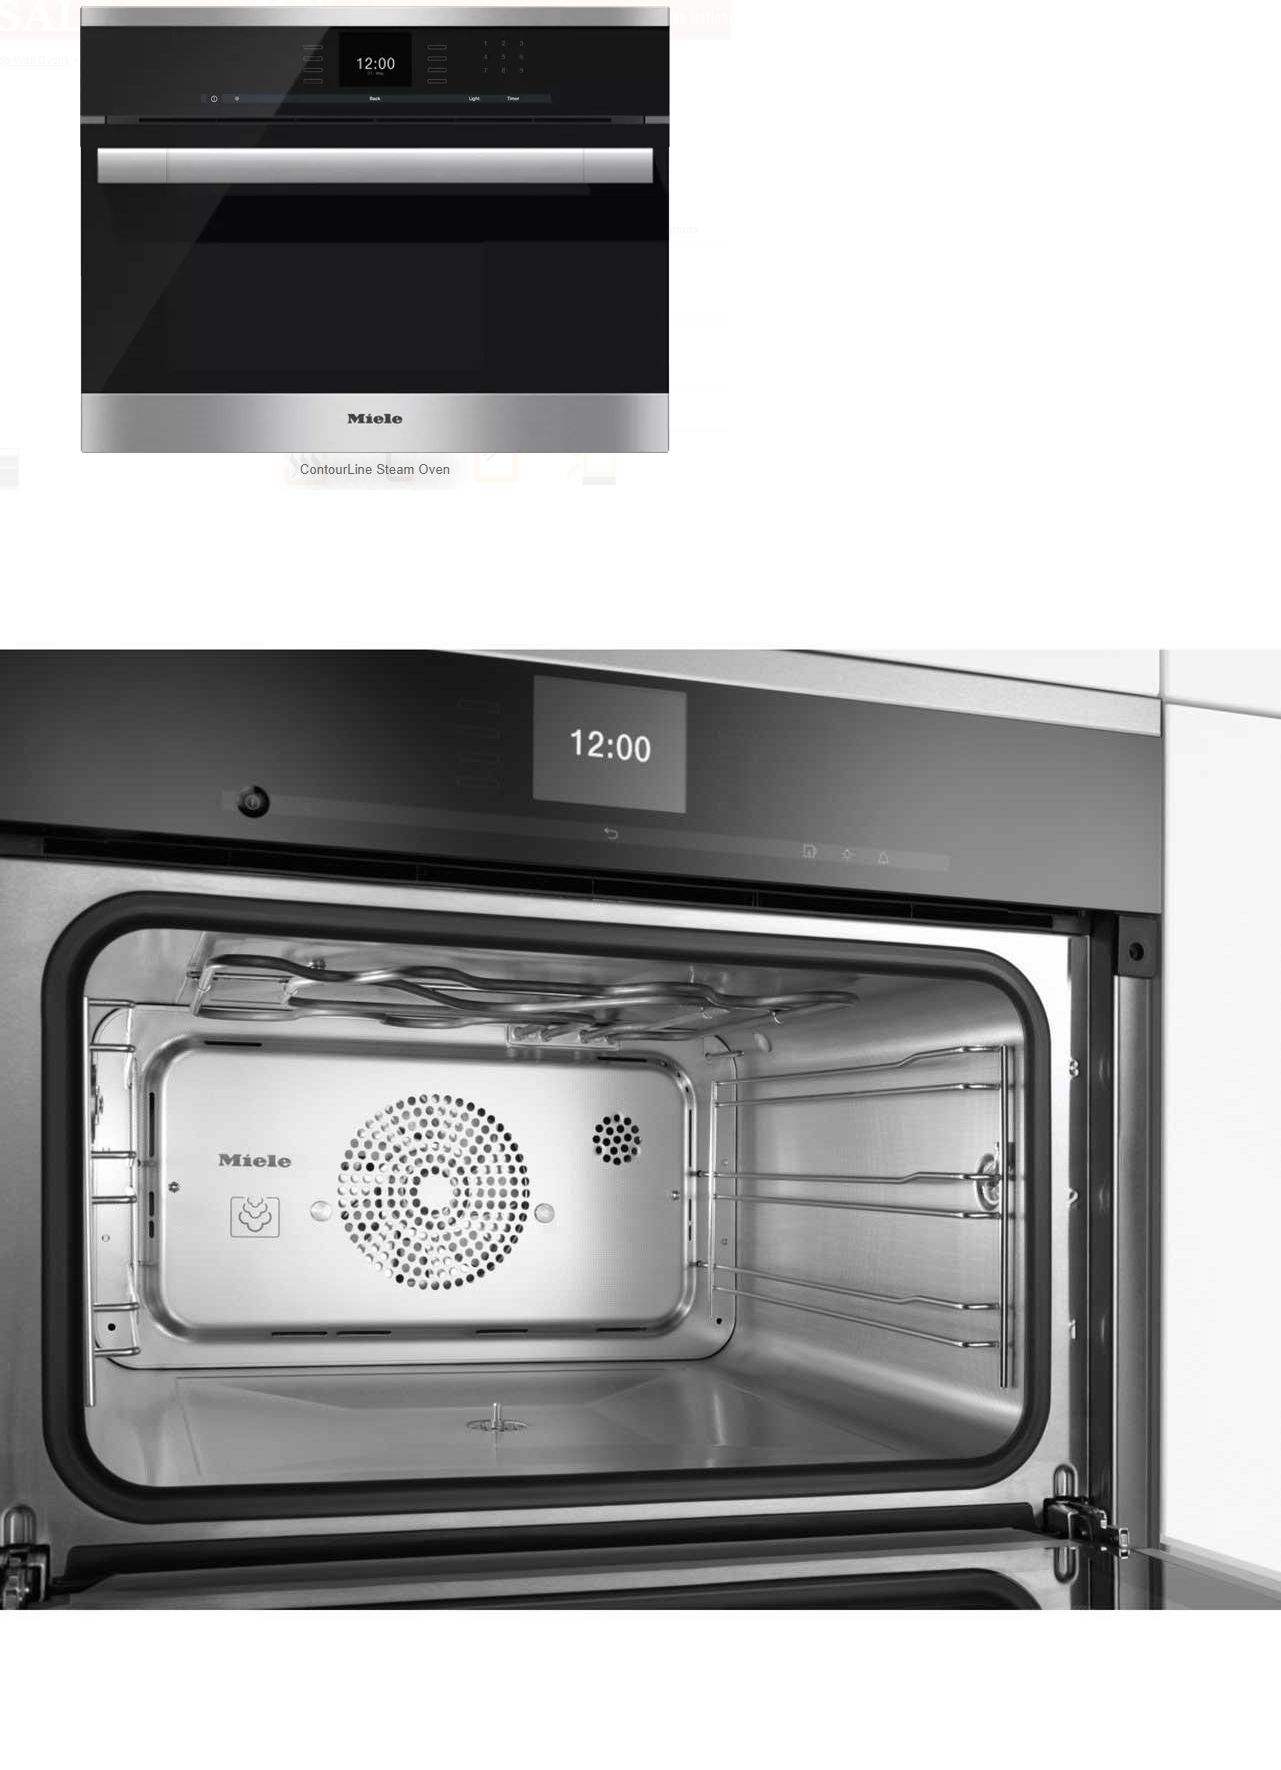 Wall Ovens 71318 Miele Contourline Sensortronic Series Dg6500 24 Inch Single Electric Oven It Now Only 2261 On Ebay